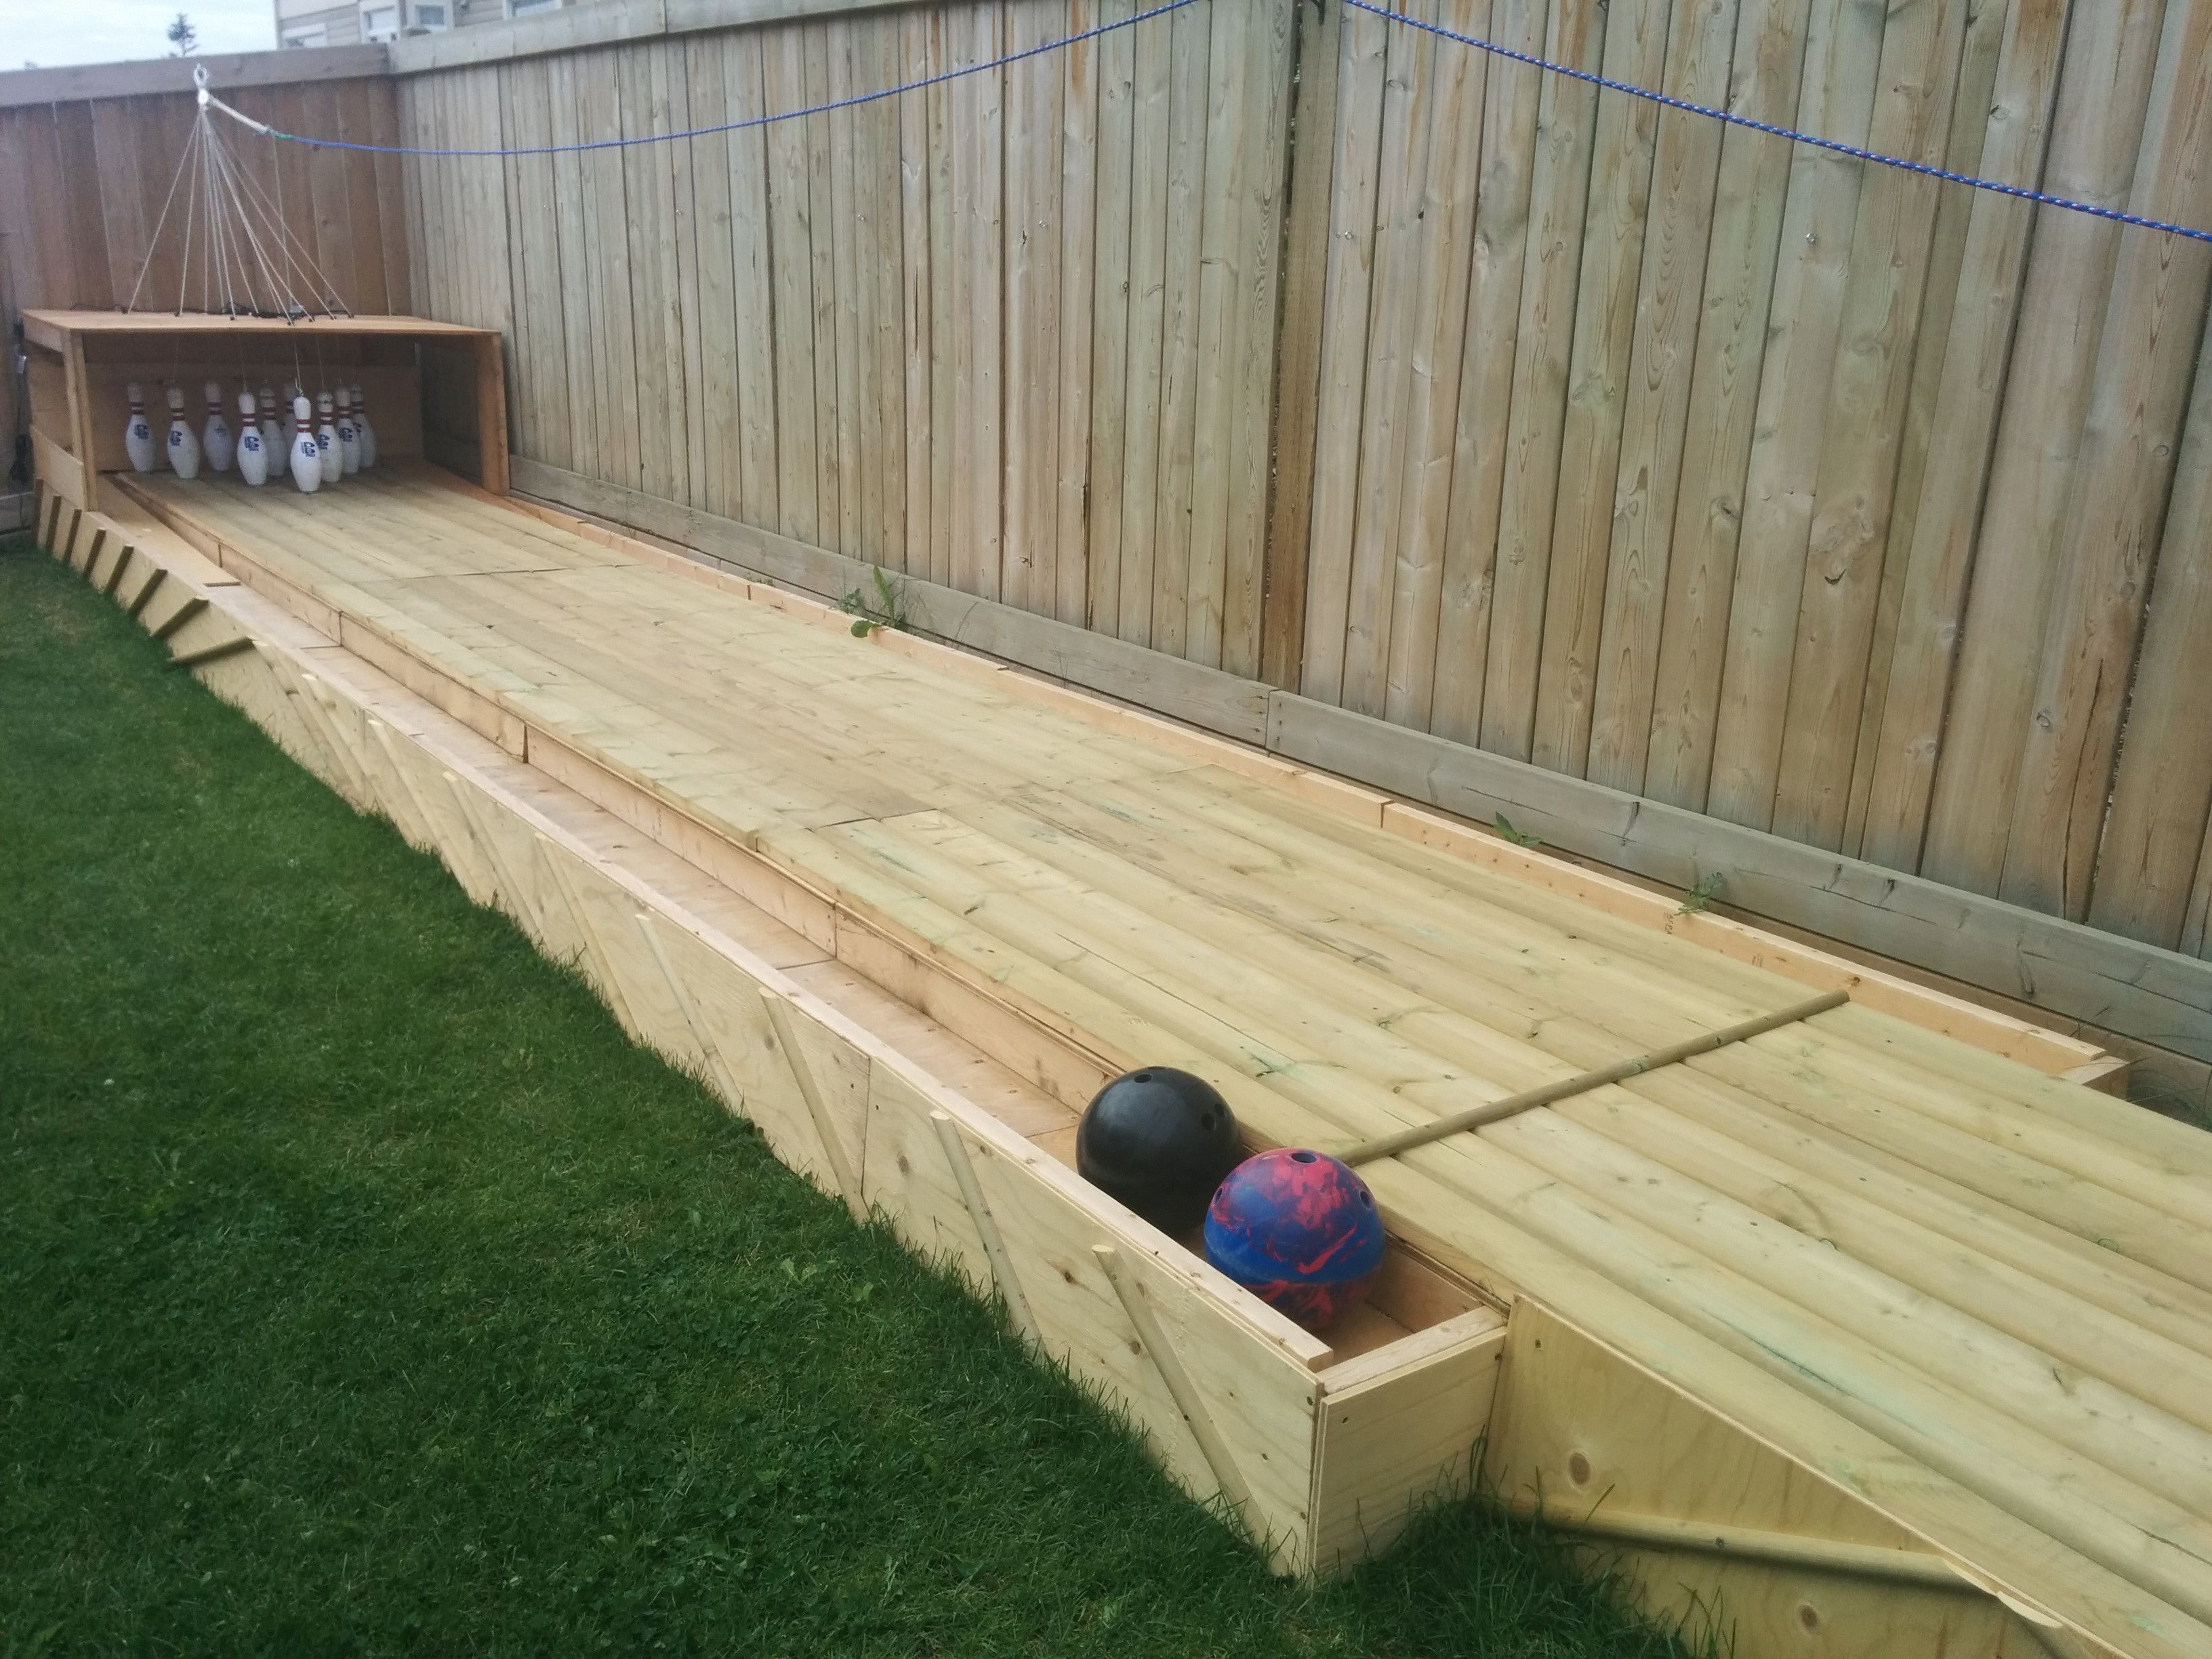 Amazing Diy Wood Backyard Bowling Alley Backyard Diy Backyard